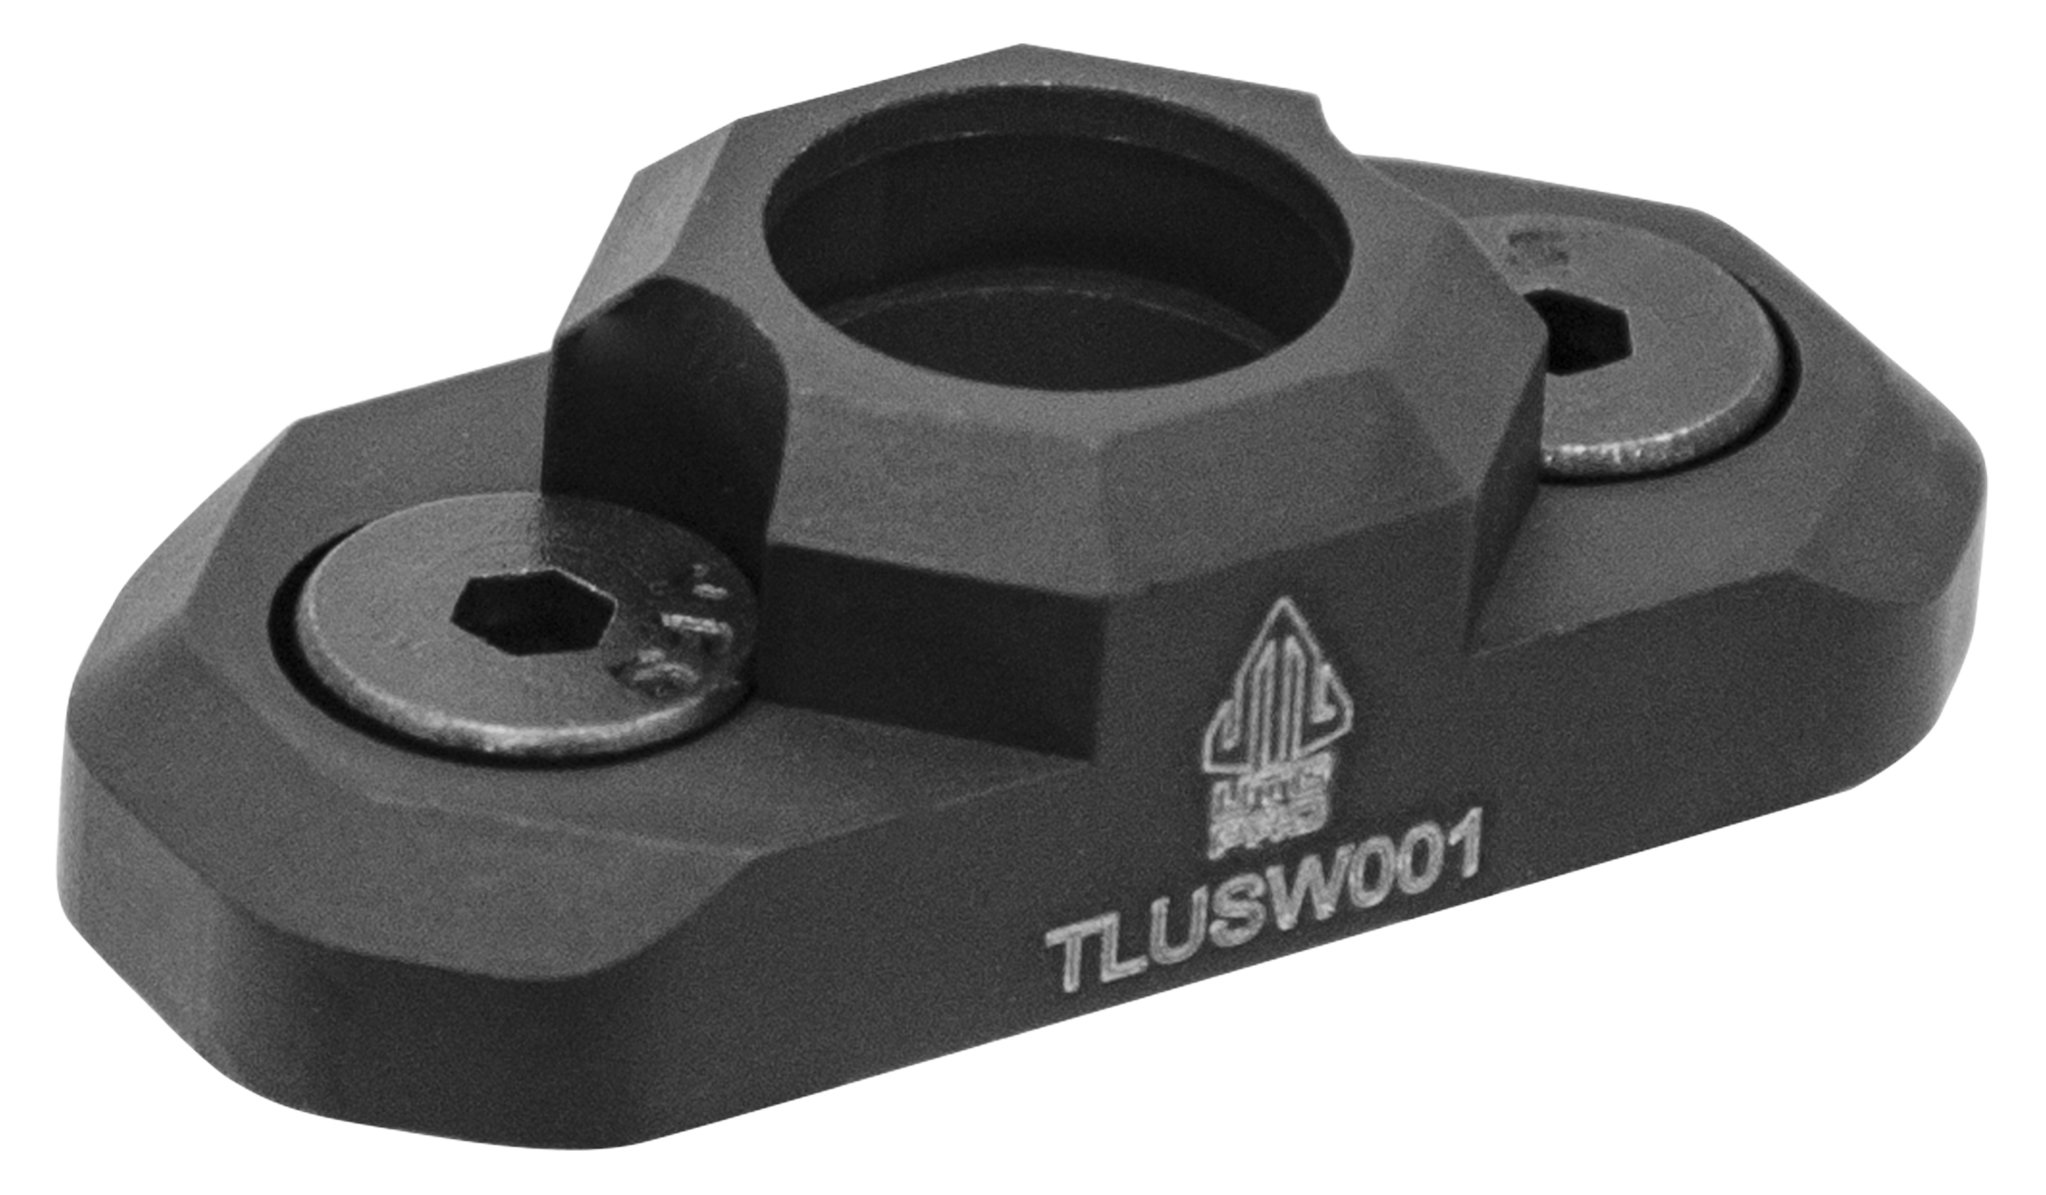 Leapers UTG PRO M-LOK(R) Standard QD Sling Swivel Adaptor by Leapers (Image #1)